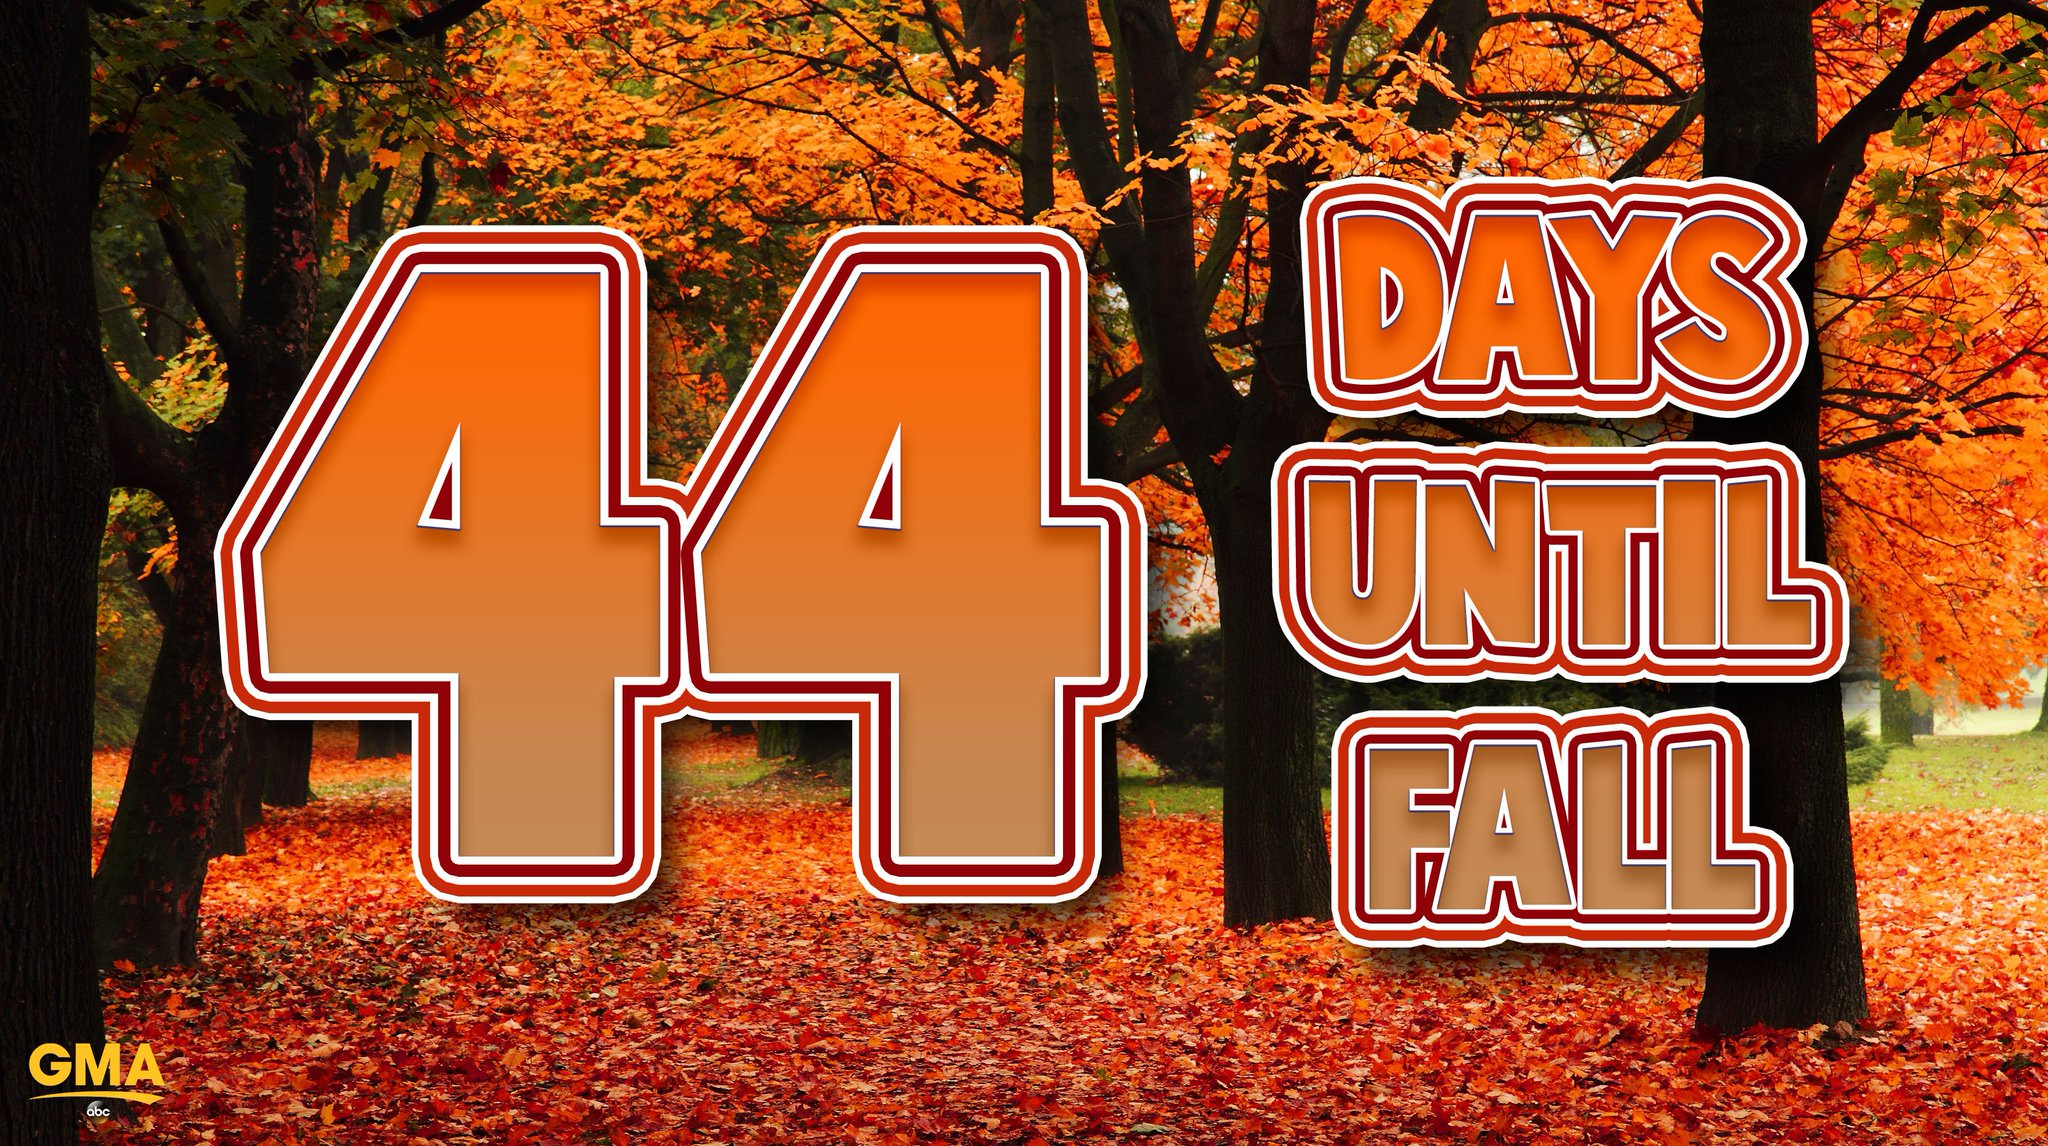 44 DAYS UNTIL FALL! �� https://t.co/83wVdfno4t